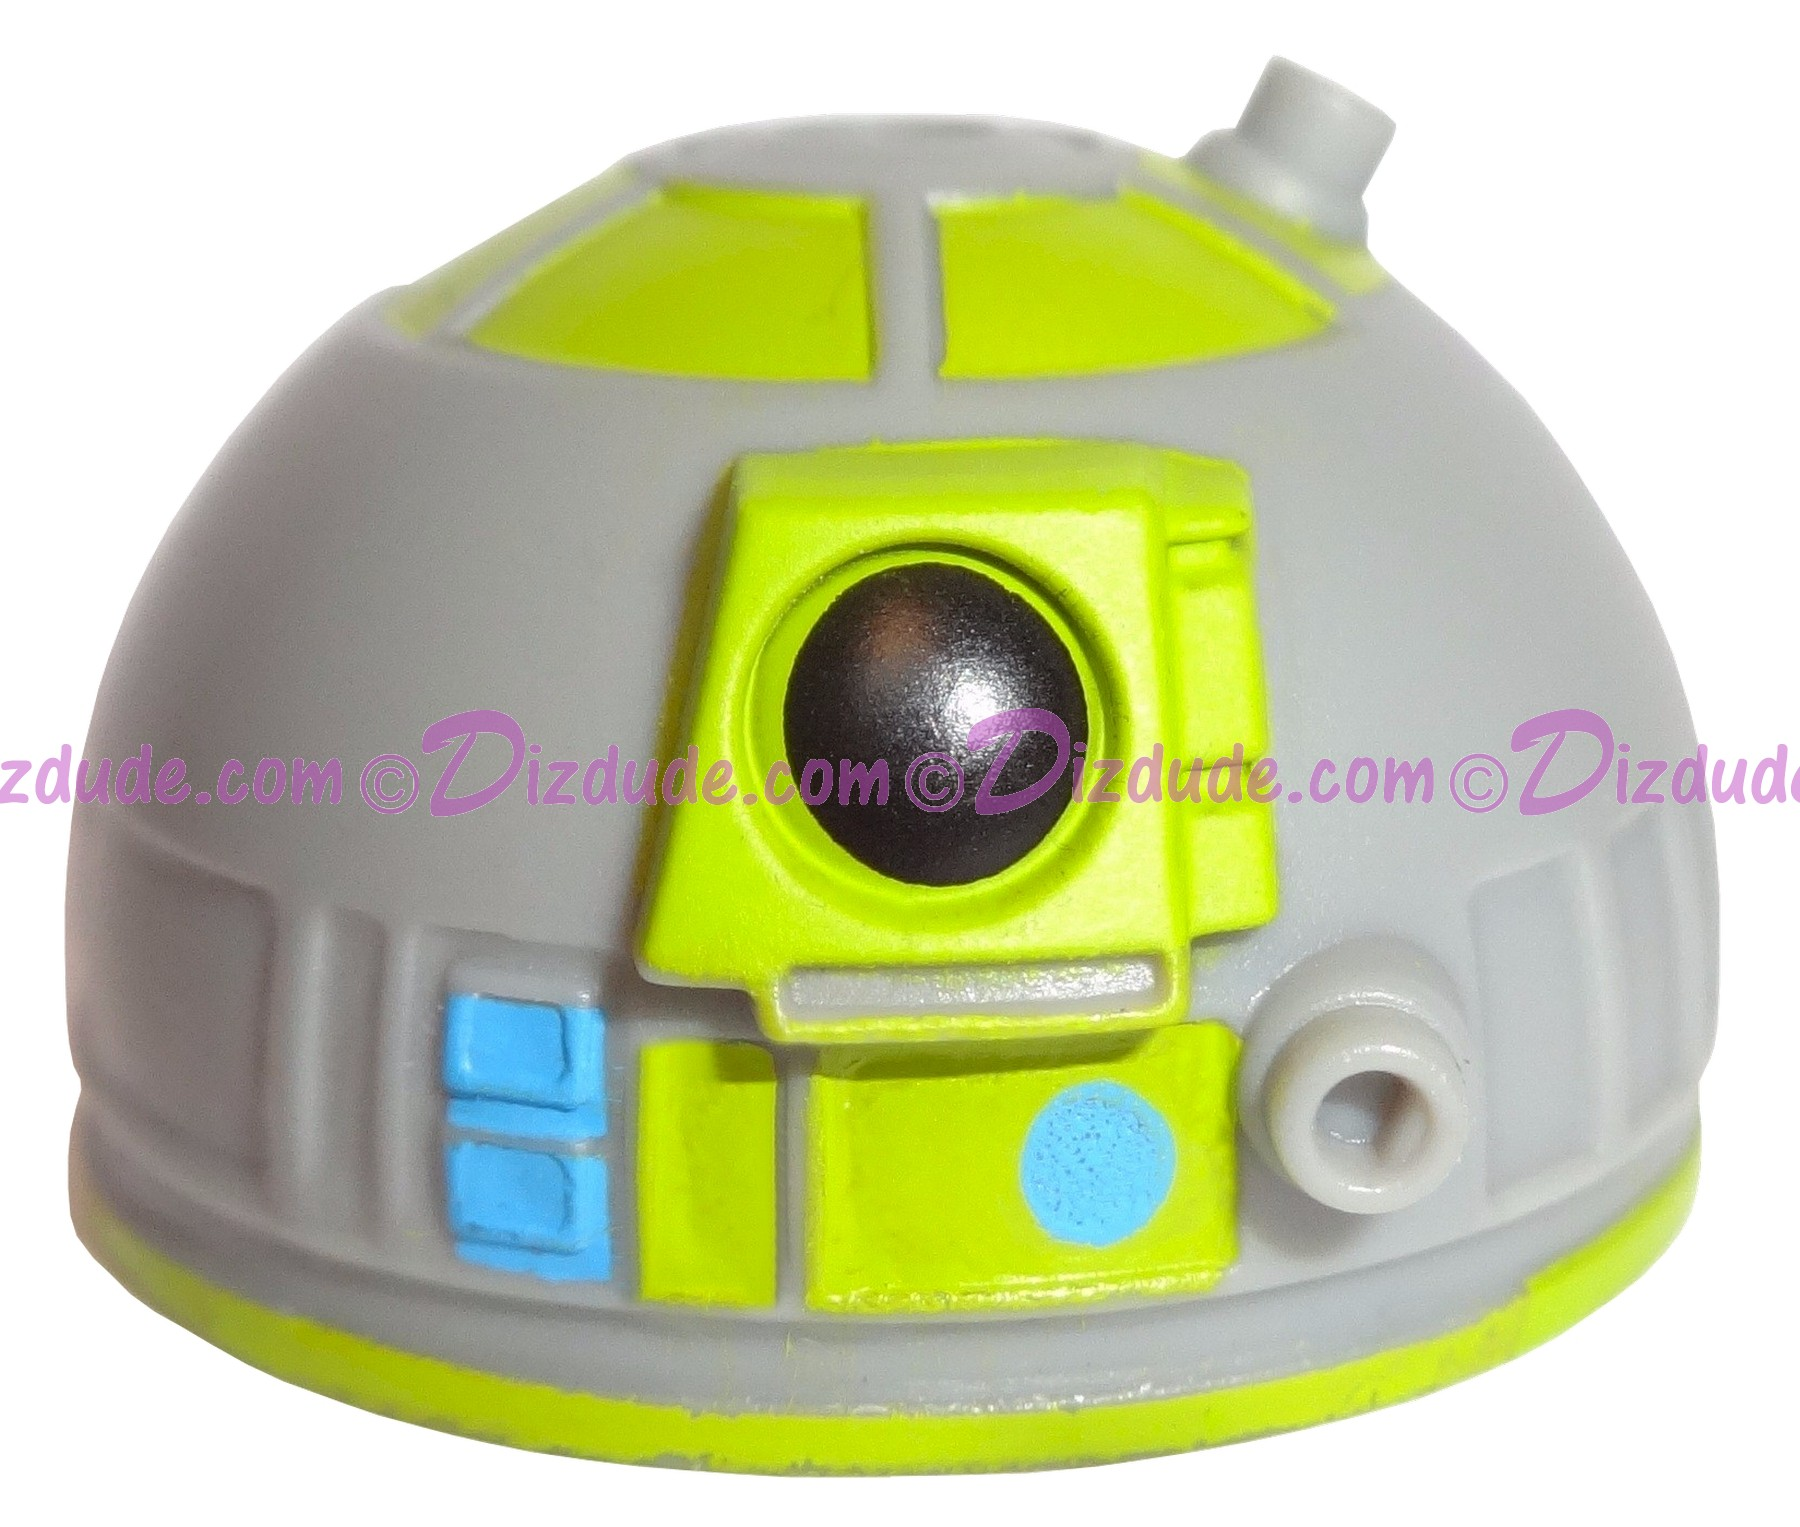 Gray Astromech Droid Dome ~ Series 2 from Disney Star Wars Build-A-Droid Factory © Dizdude.com